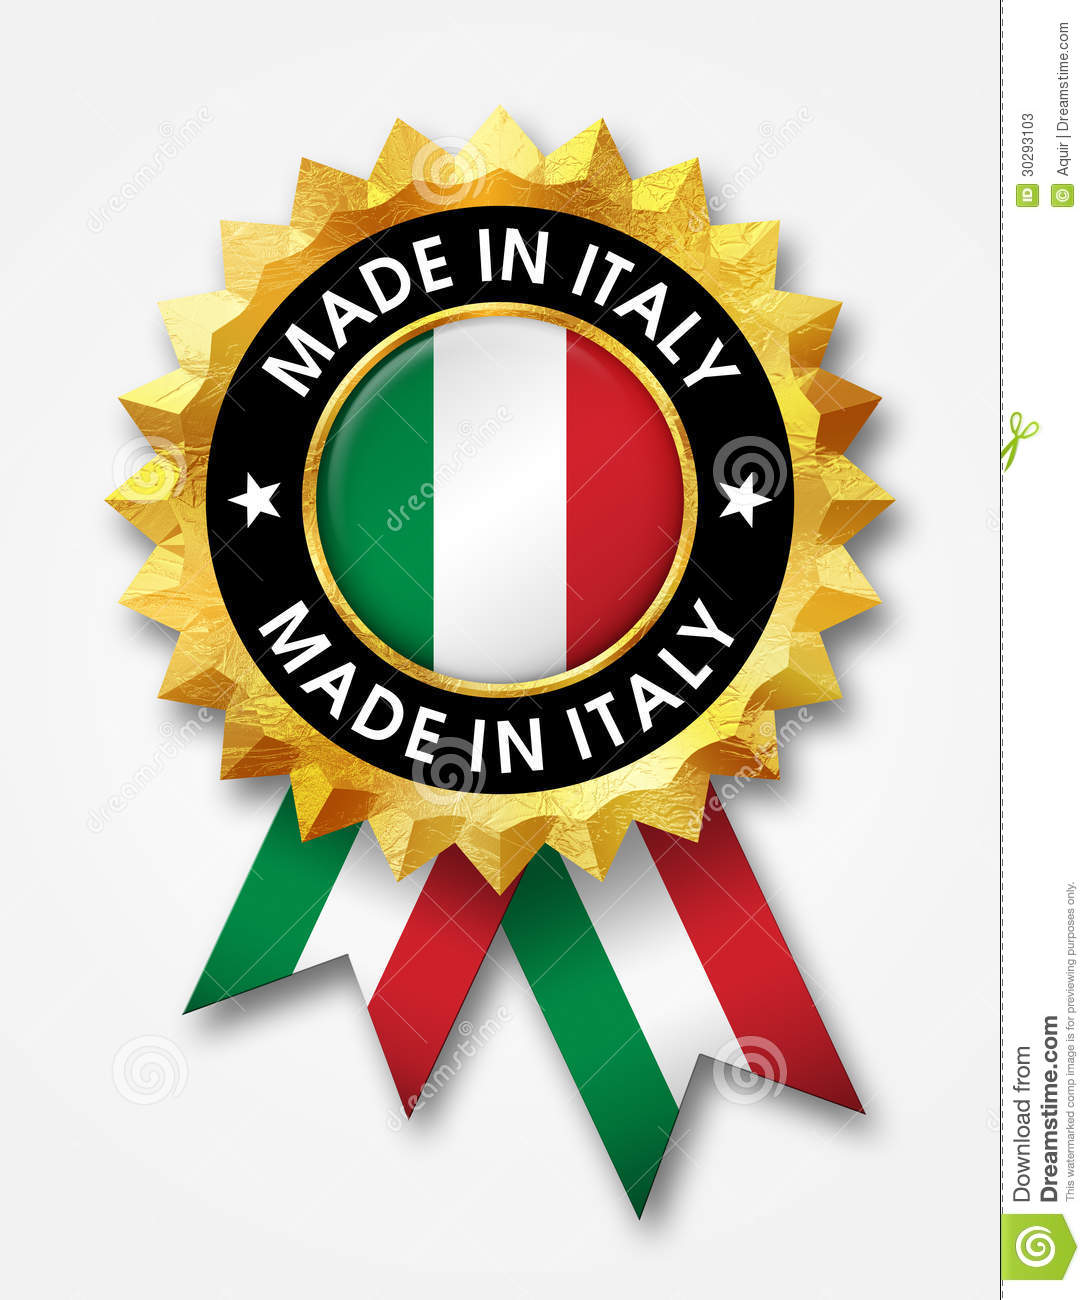 Made in italy badge stock photos image 30293103 for Made com italia